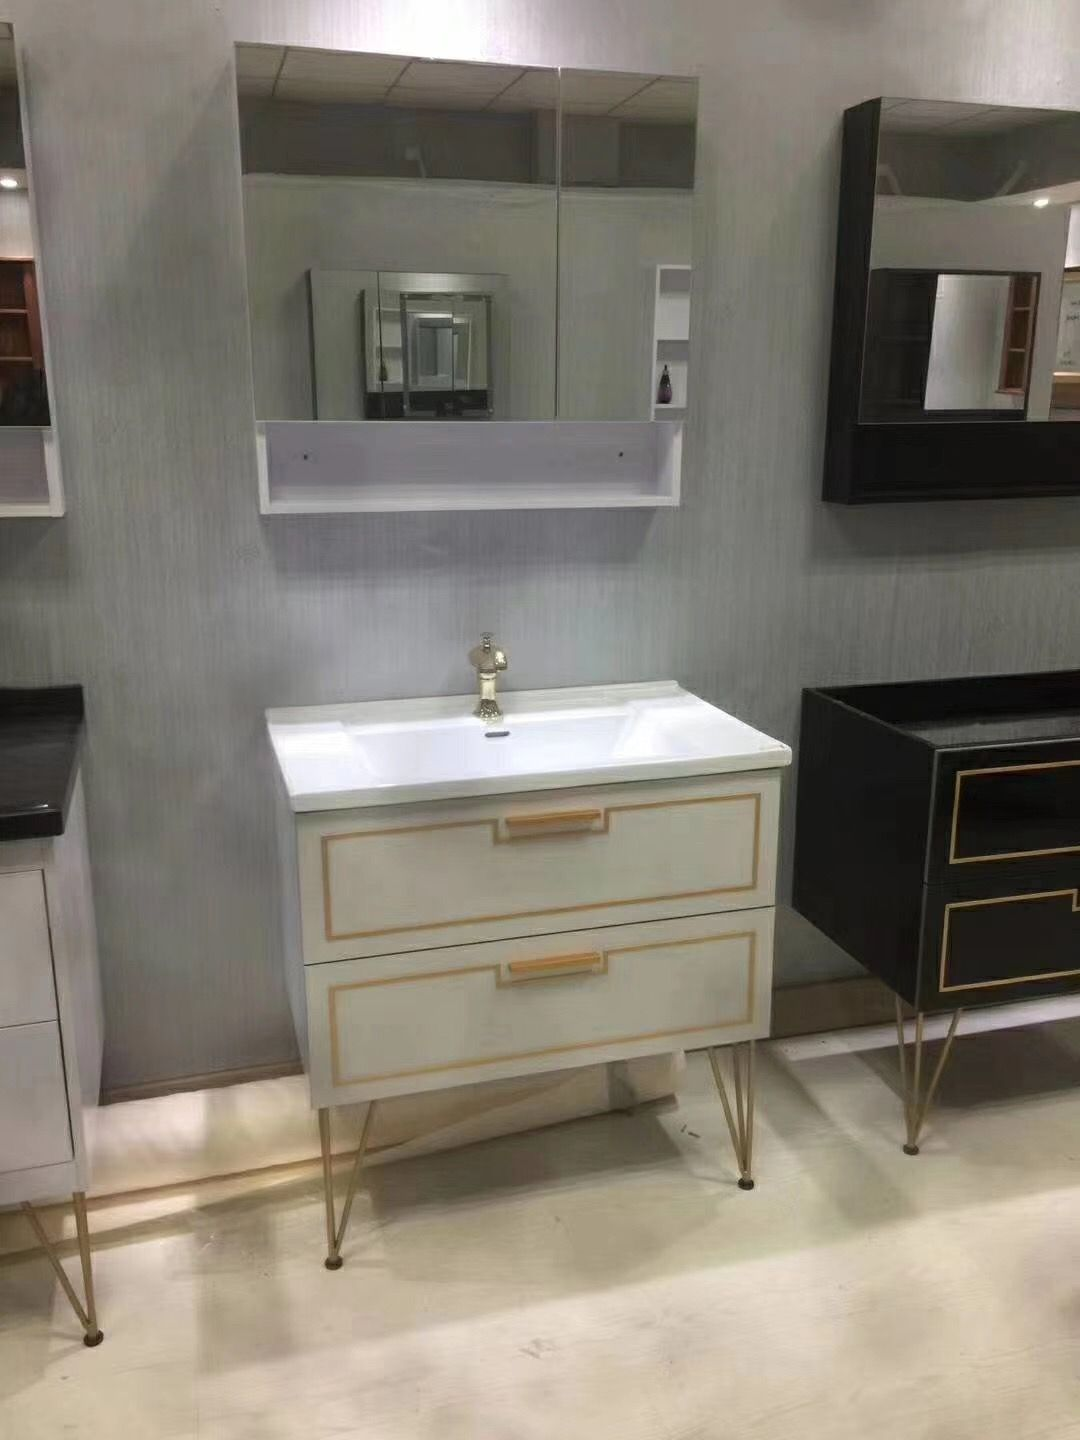 White Color Bathroom Vanity With Legs With Medicine Cabinet Led